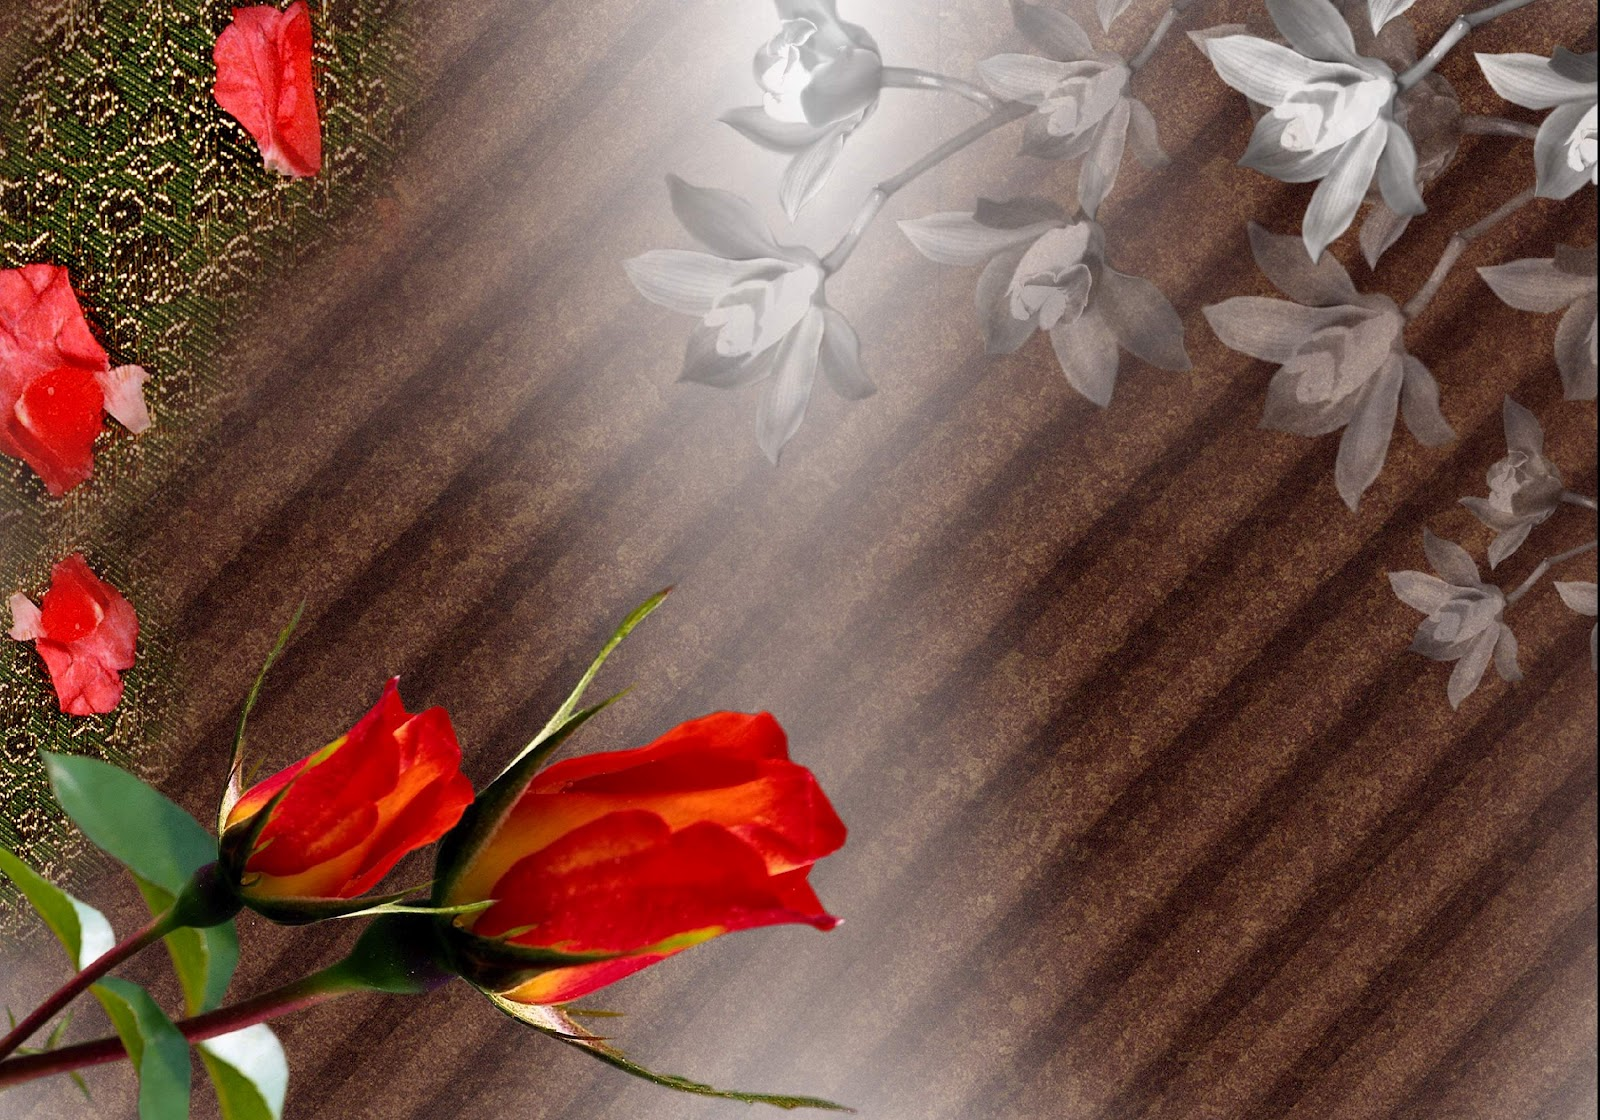 http://2.bp.blogspot.com/-AzGXXKiIOC4/UD9cKhnrQtI/AAAAAAAAJJ4/uQ7Q-HEhgWE/s1600/flower-photo-frame-background.JPG